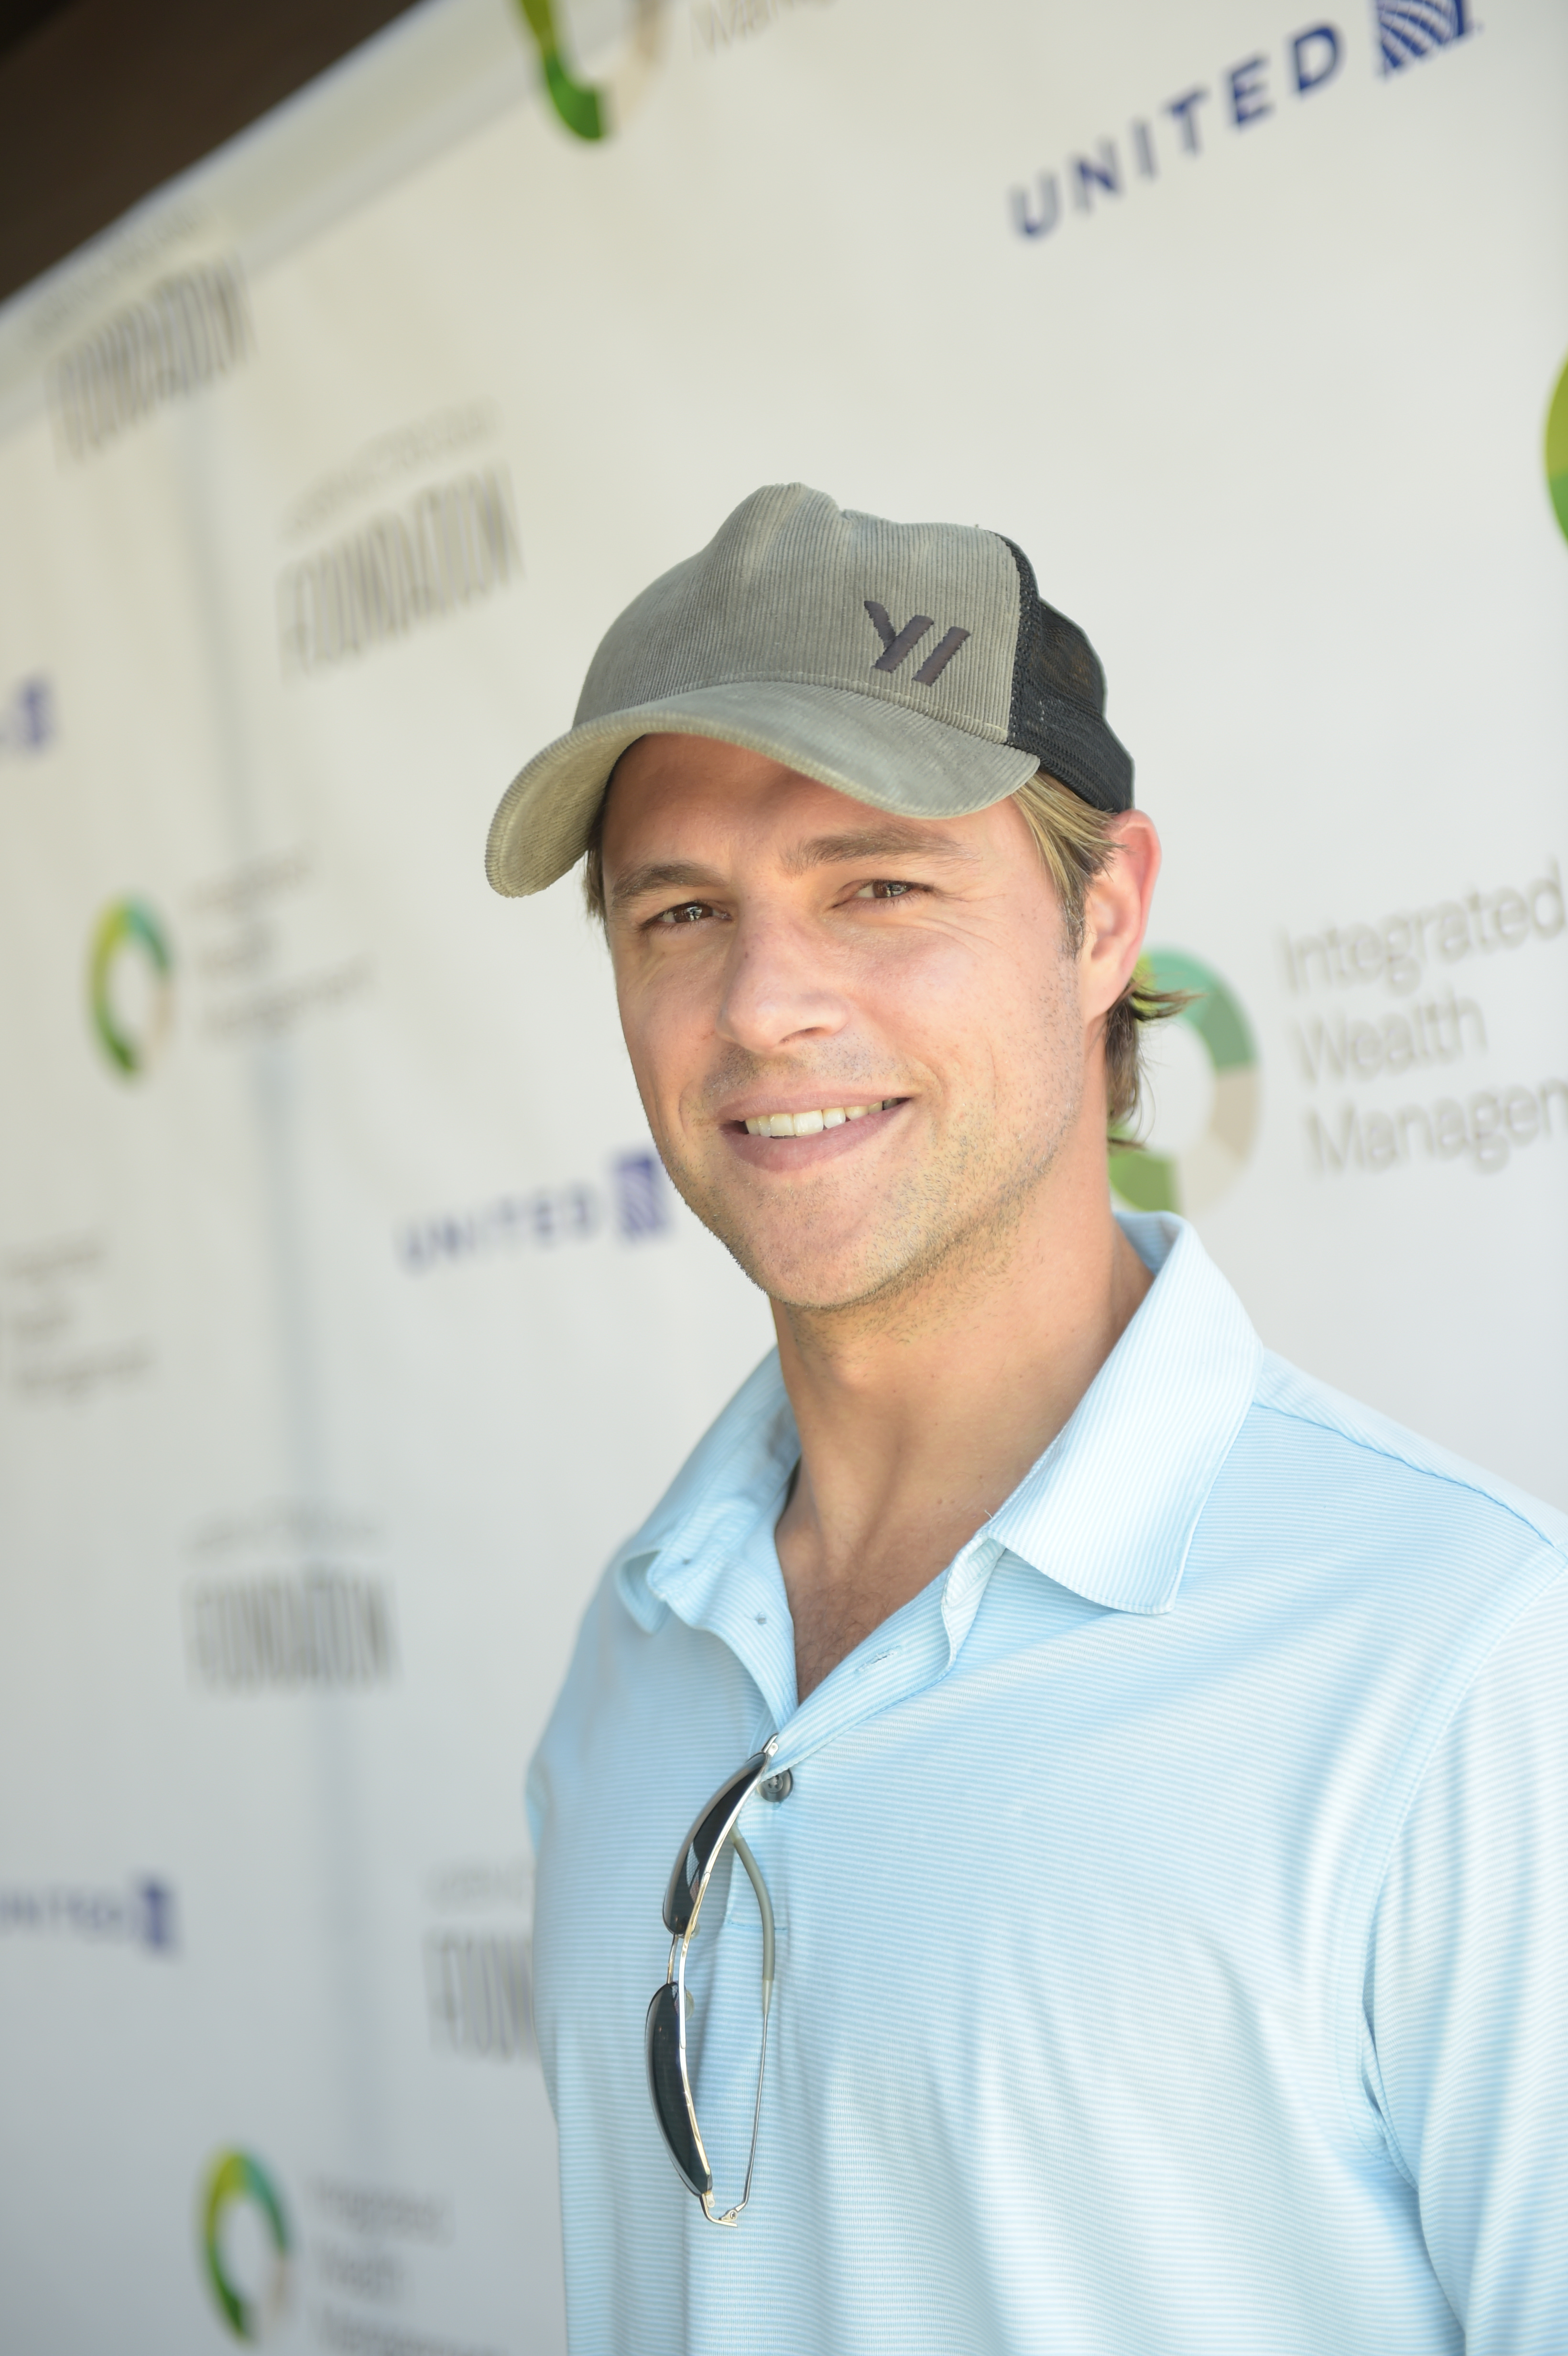 Actor Sam Page attends the Screen Actors Guild Foundation's 6th Annual Los Angeles Golf Classic on June 8, 2015 in Burbank, California. (Photo by Jason Kempin/Getty Images for The Screen Actors Guild Foundation)